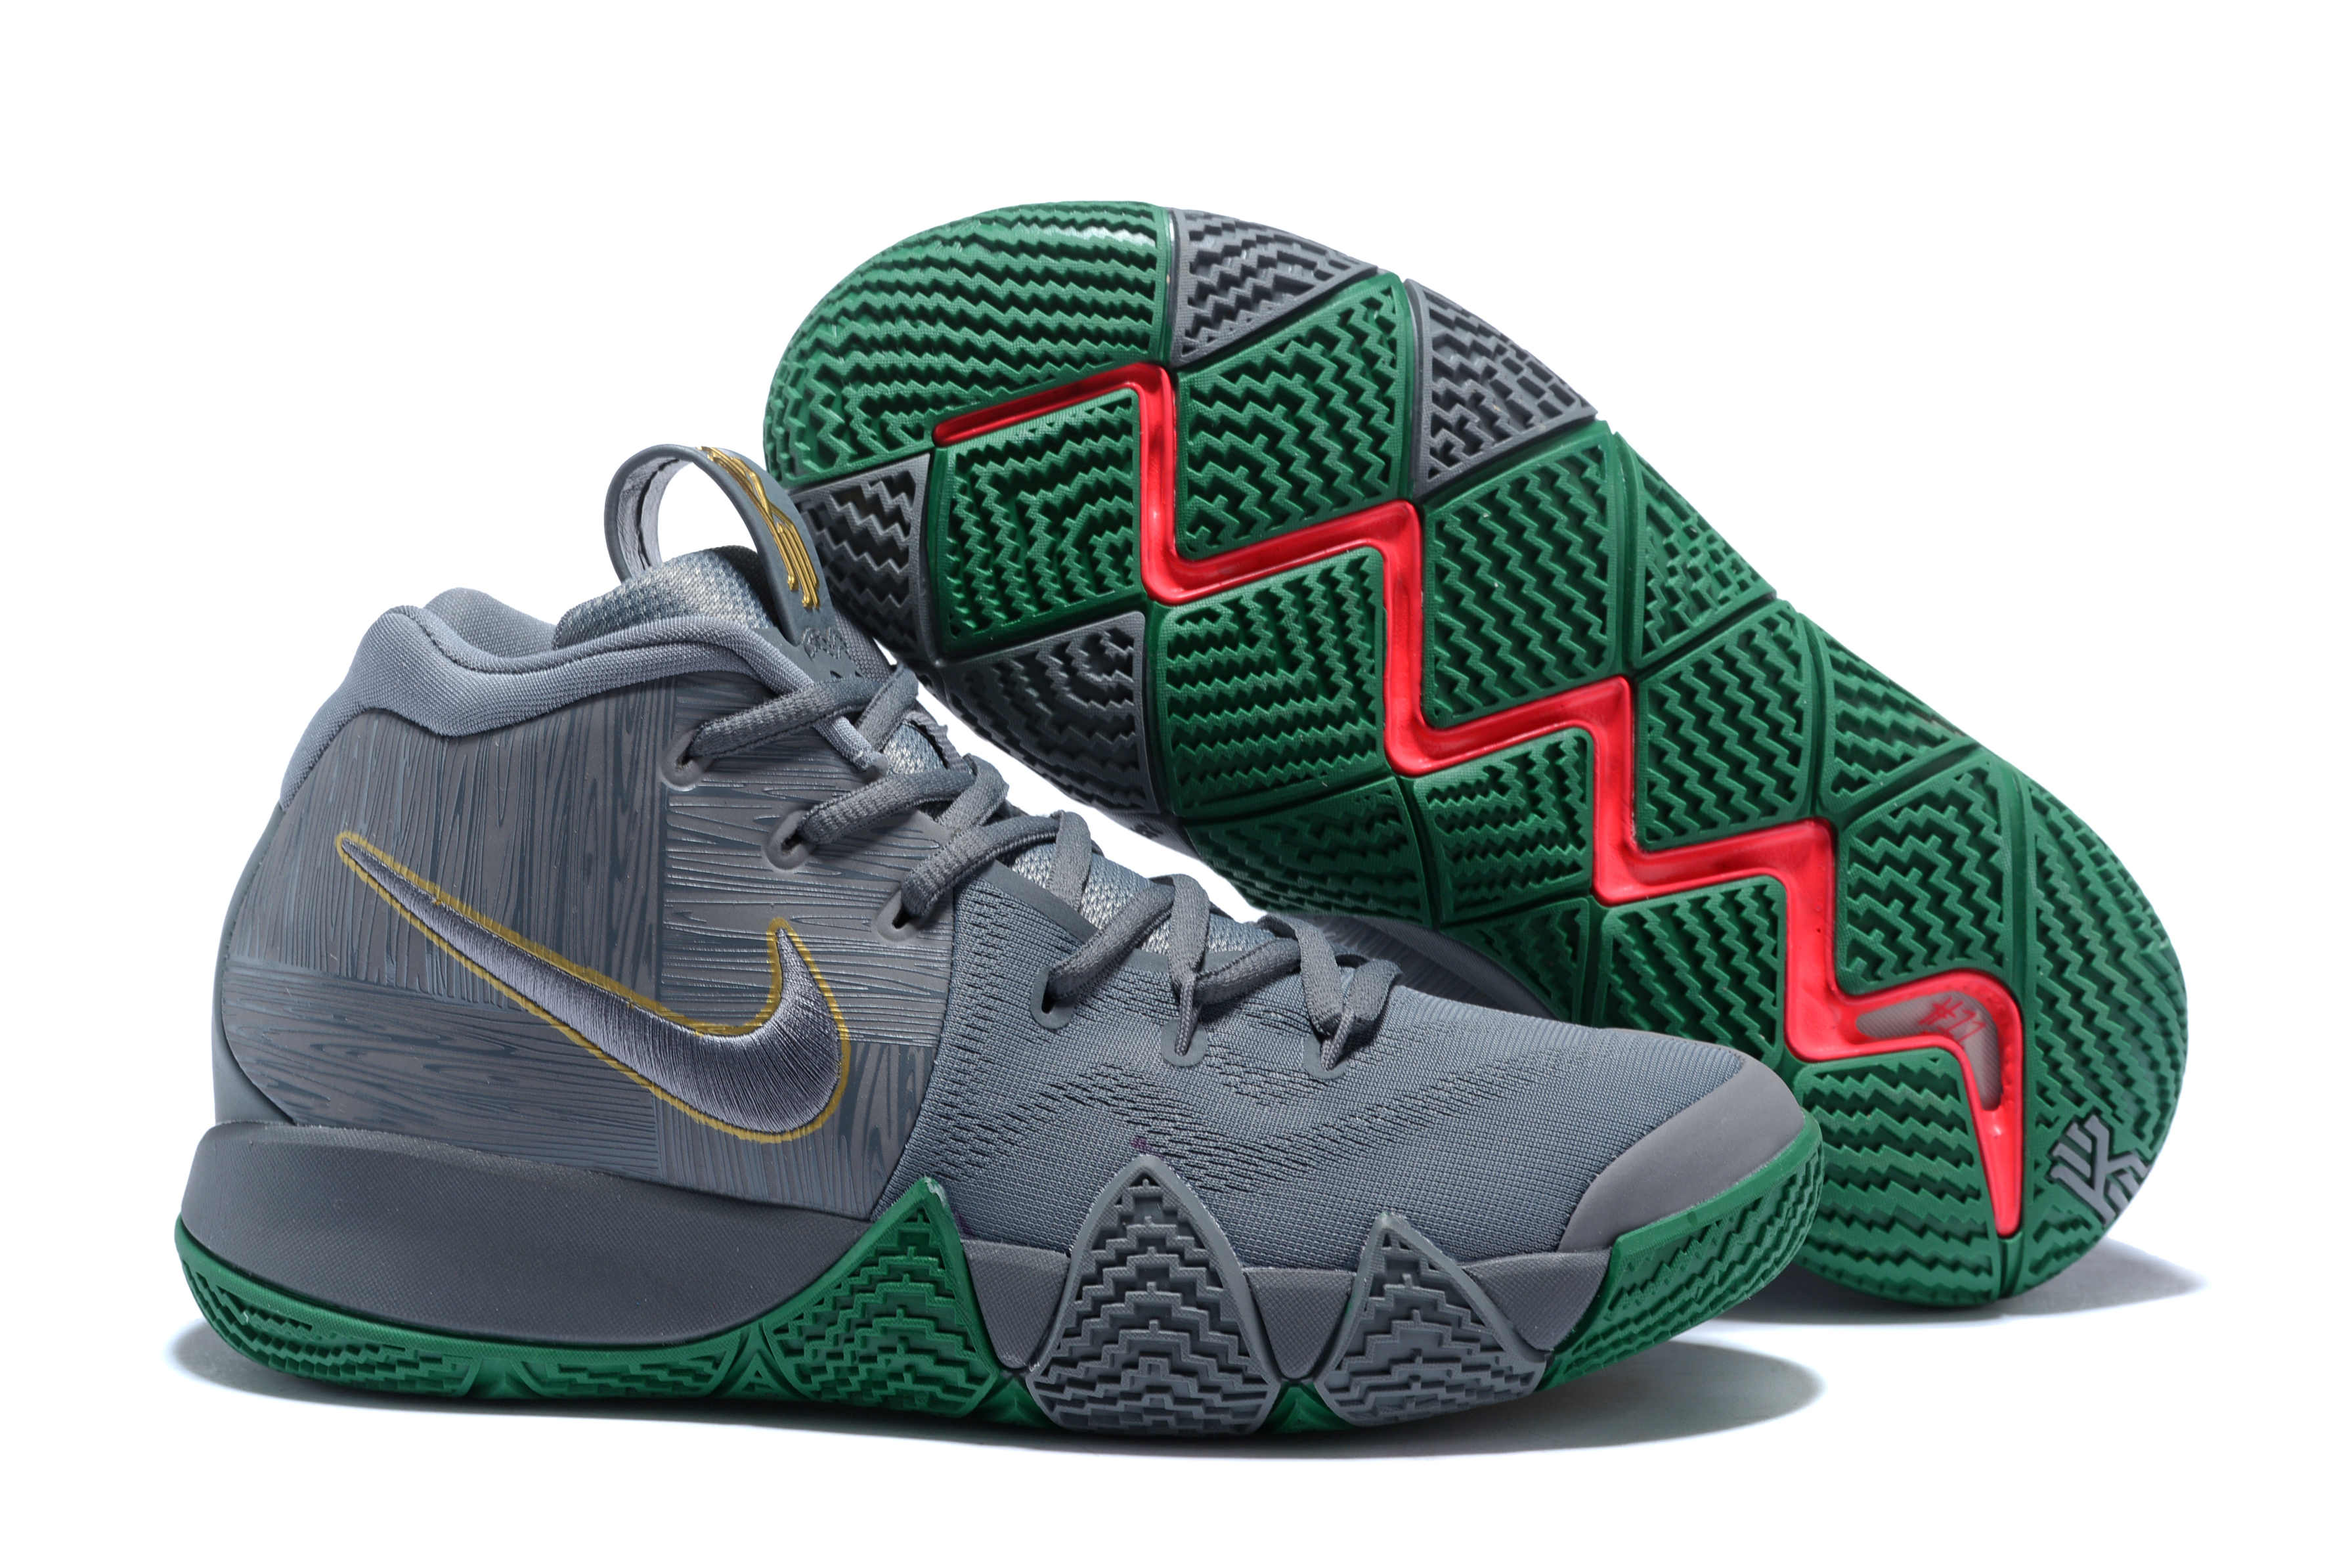 New Nike Kyrie 4 Grey Green Shoes